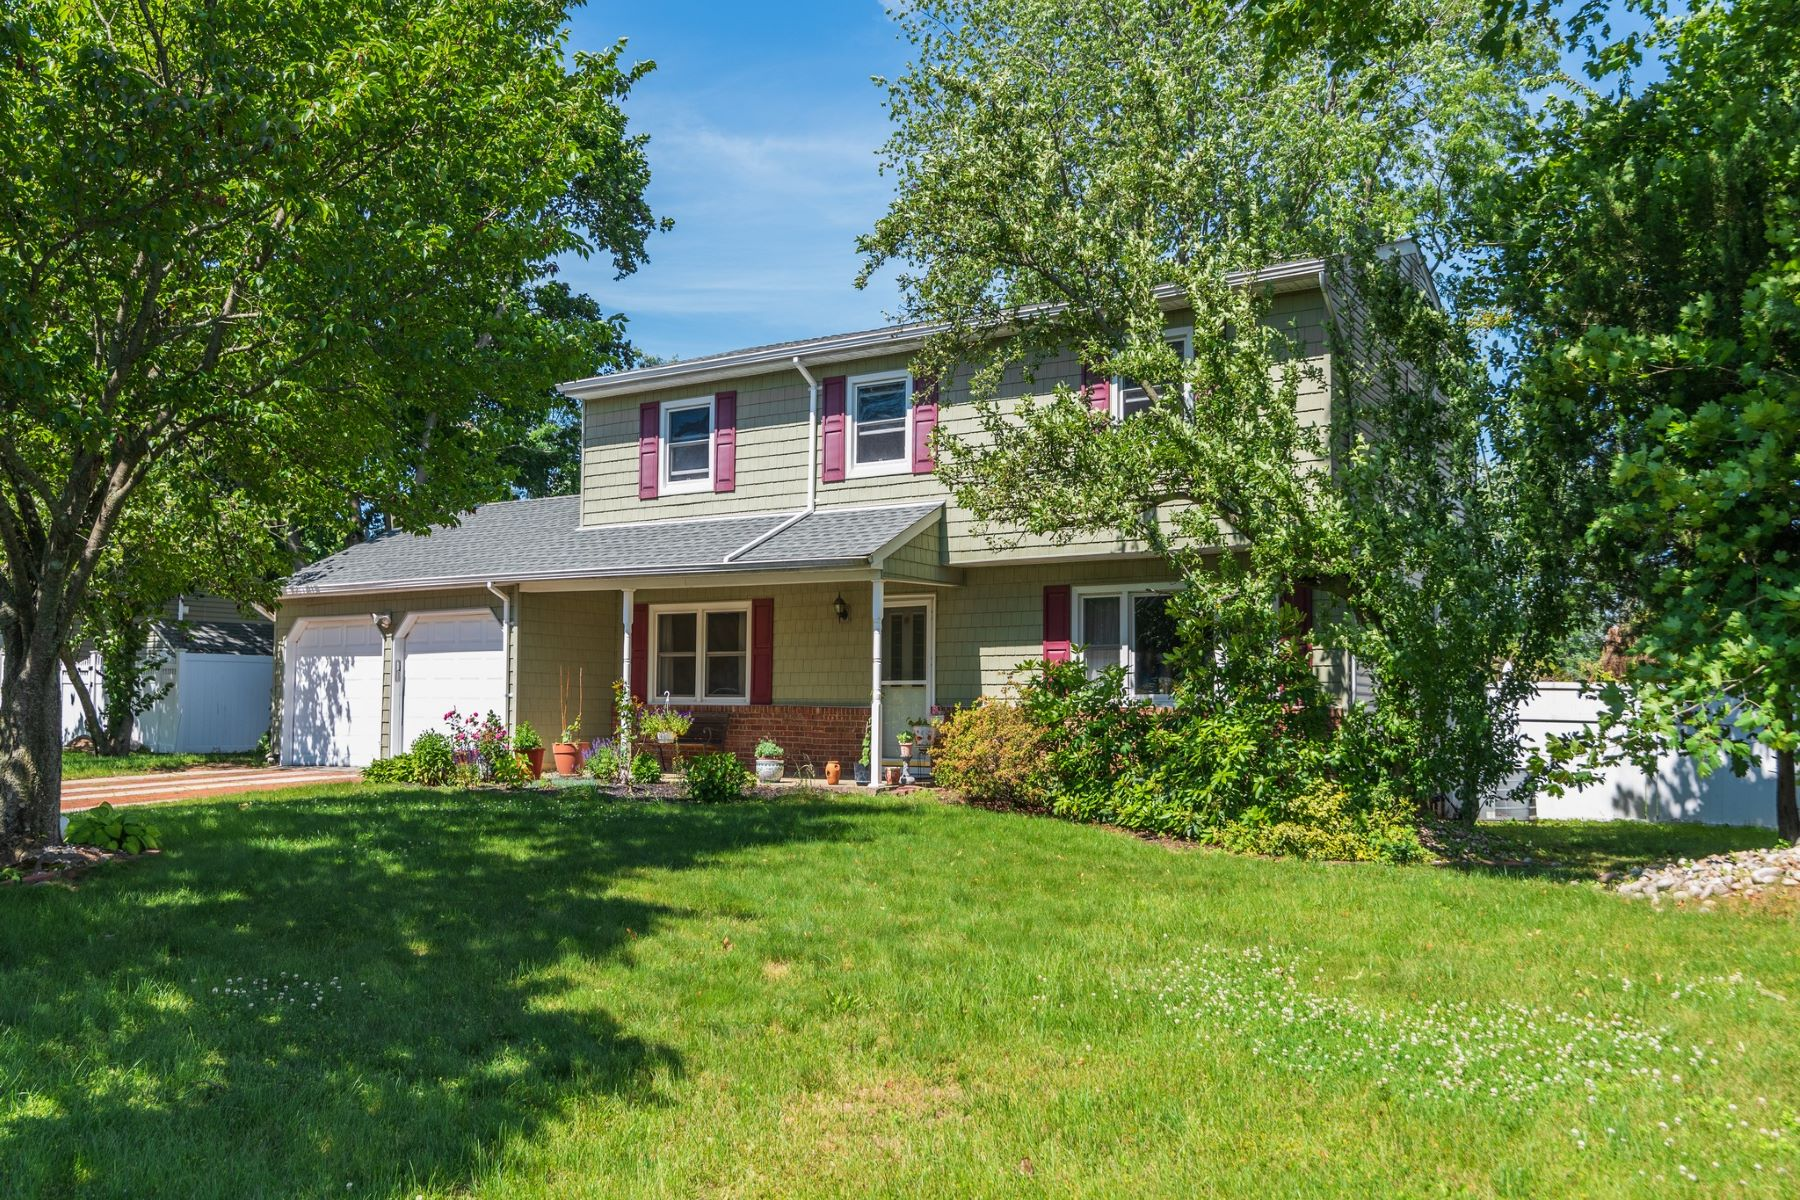 Single Family Homes for Active at Dix Hills 7 Sagamore Ln Dix Hills, New York 11746 United States